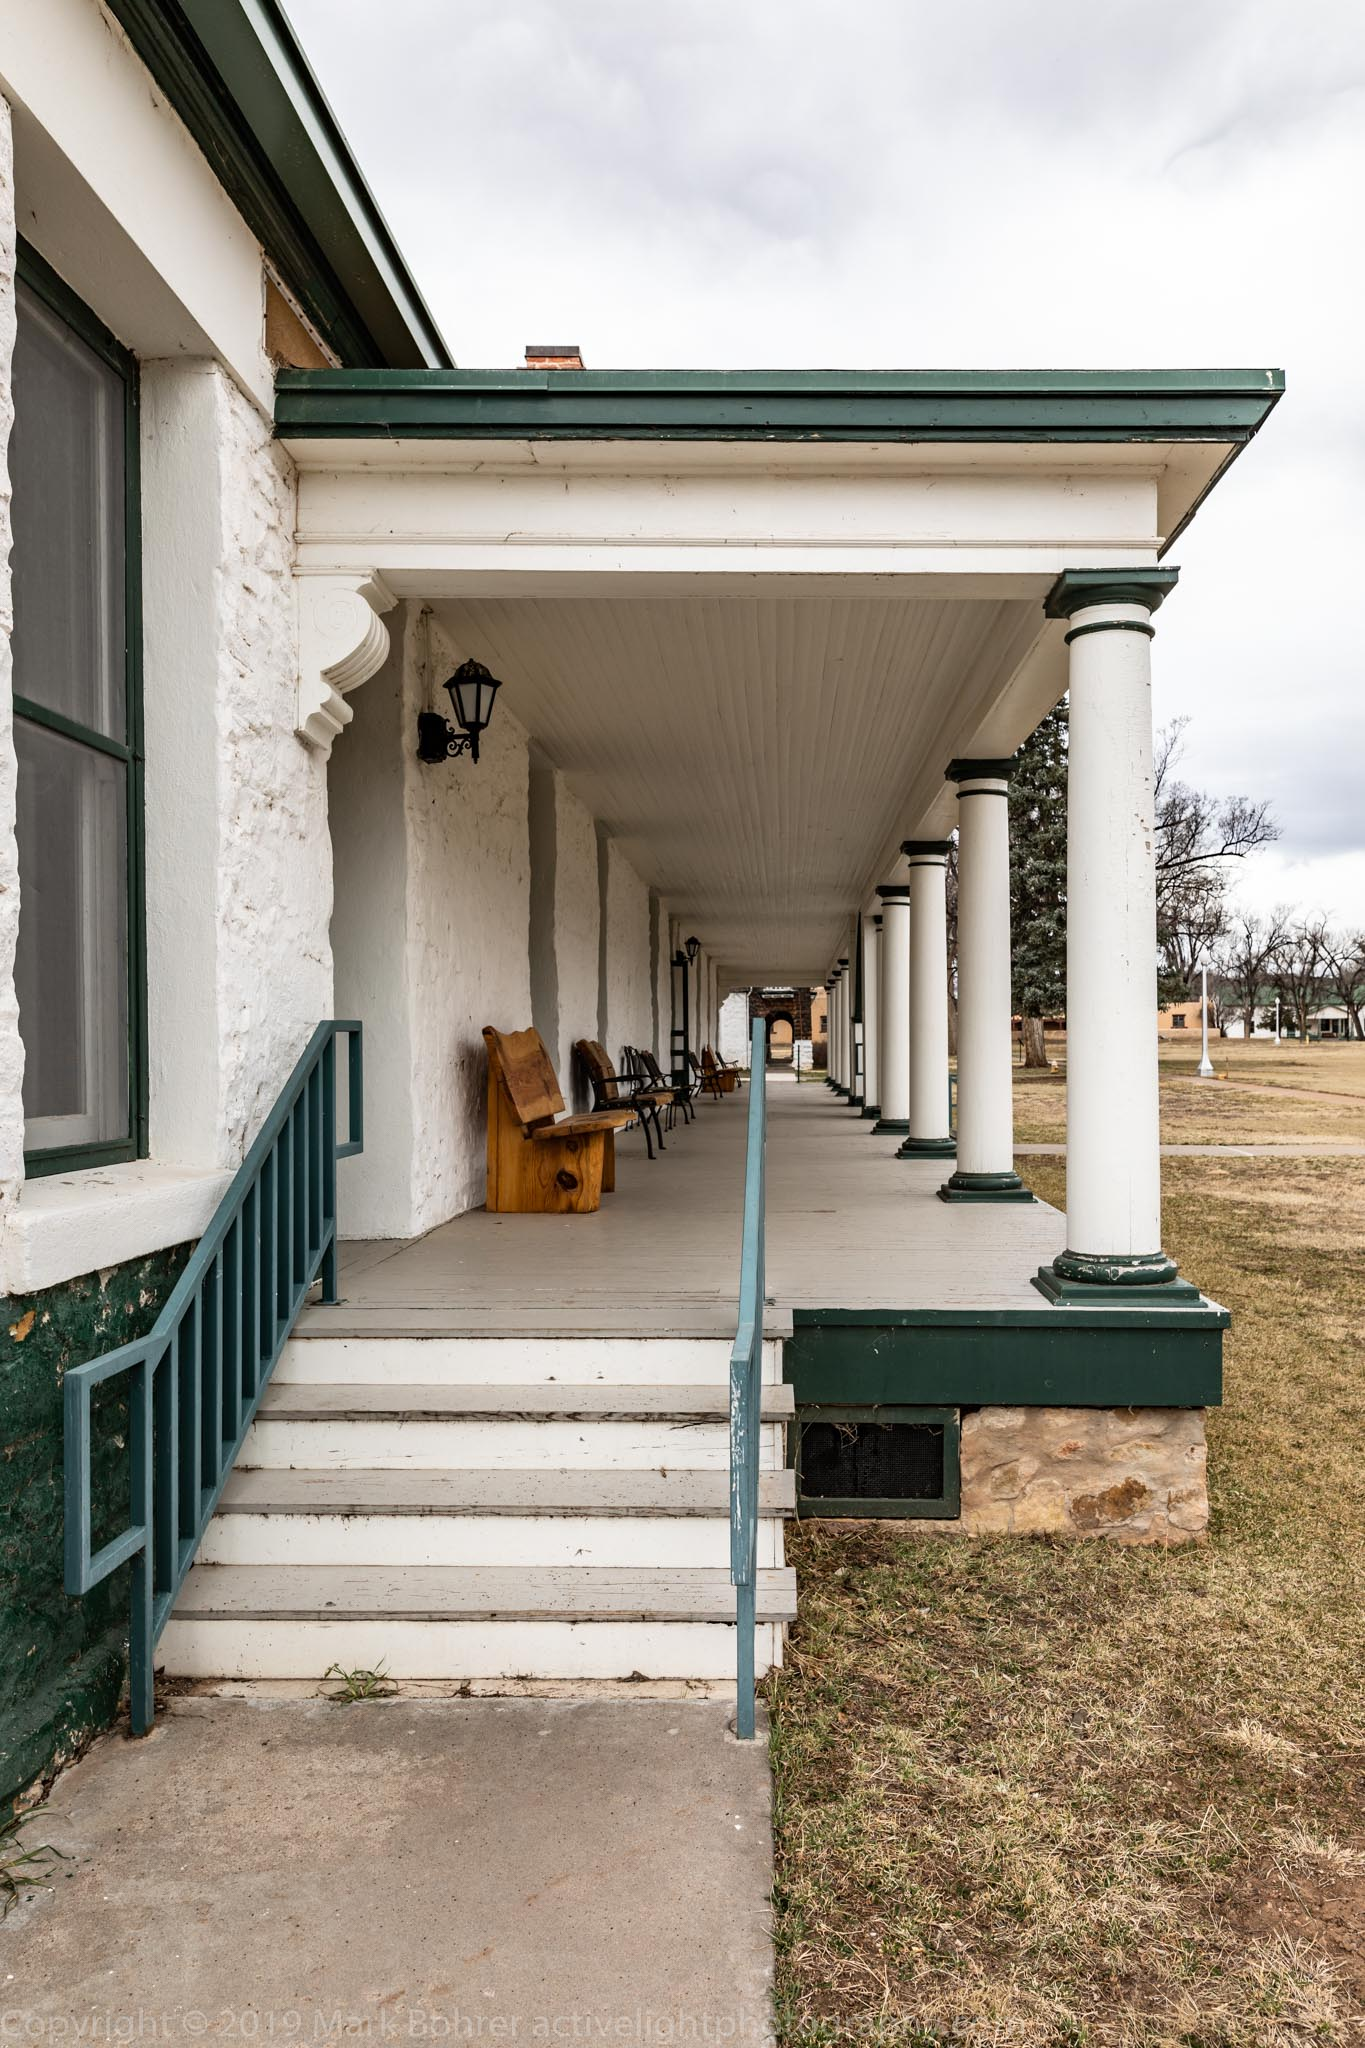 Porch, Fort Stanton. TB patients sat out here in all weather for fresh air, thought to help with the disease.